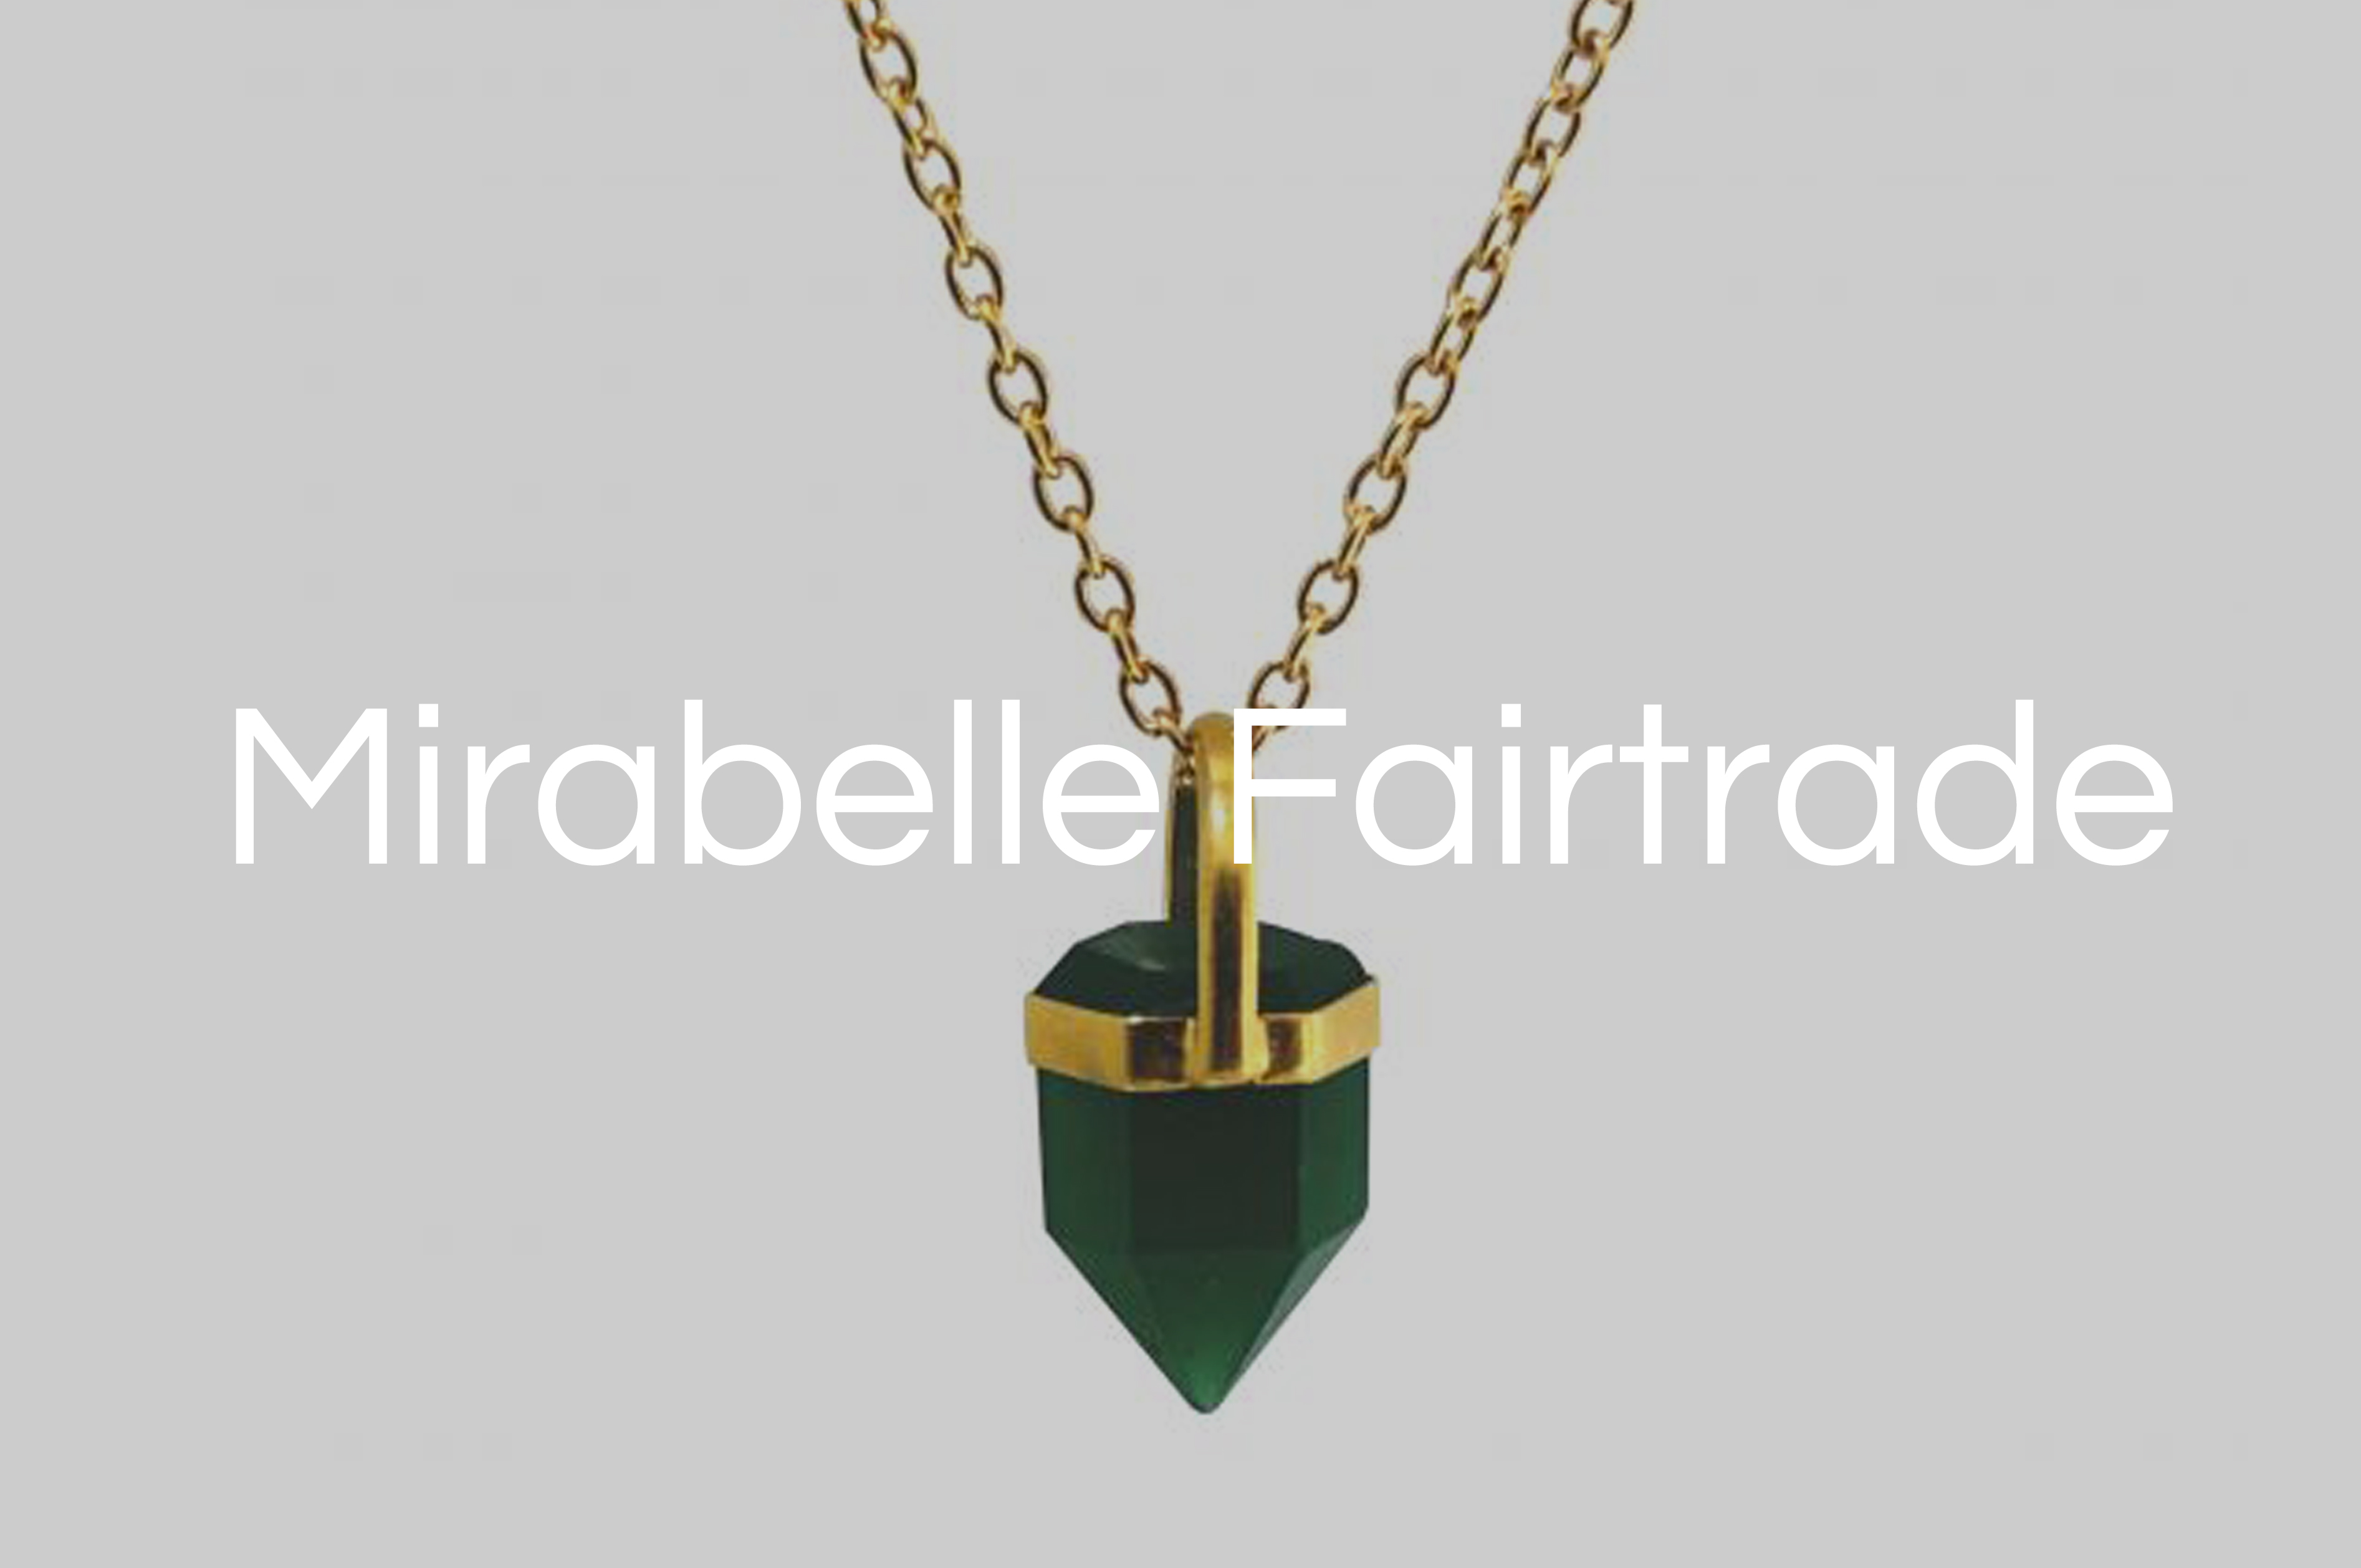 Mirabelle Fairtrade Collection